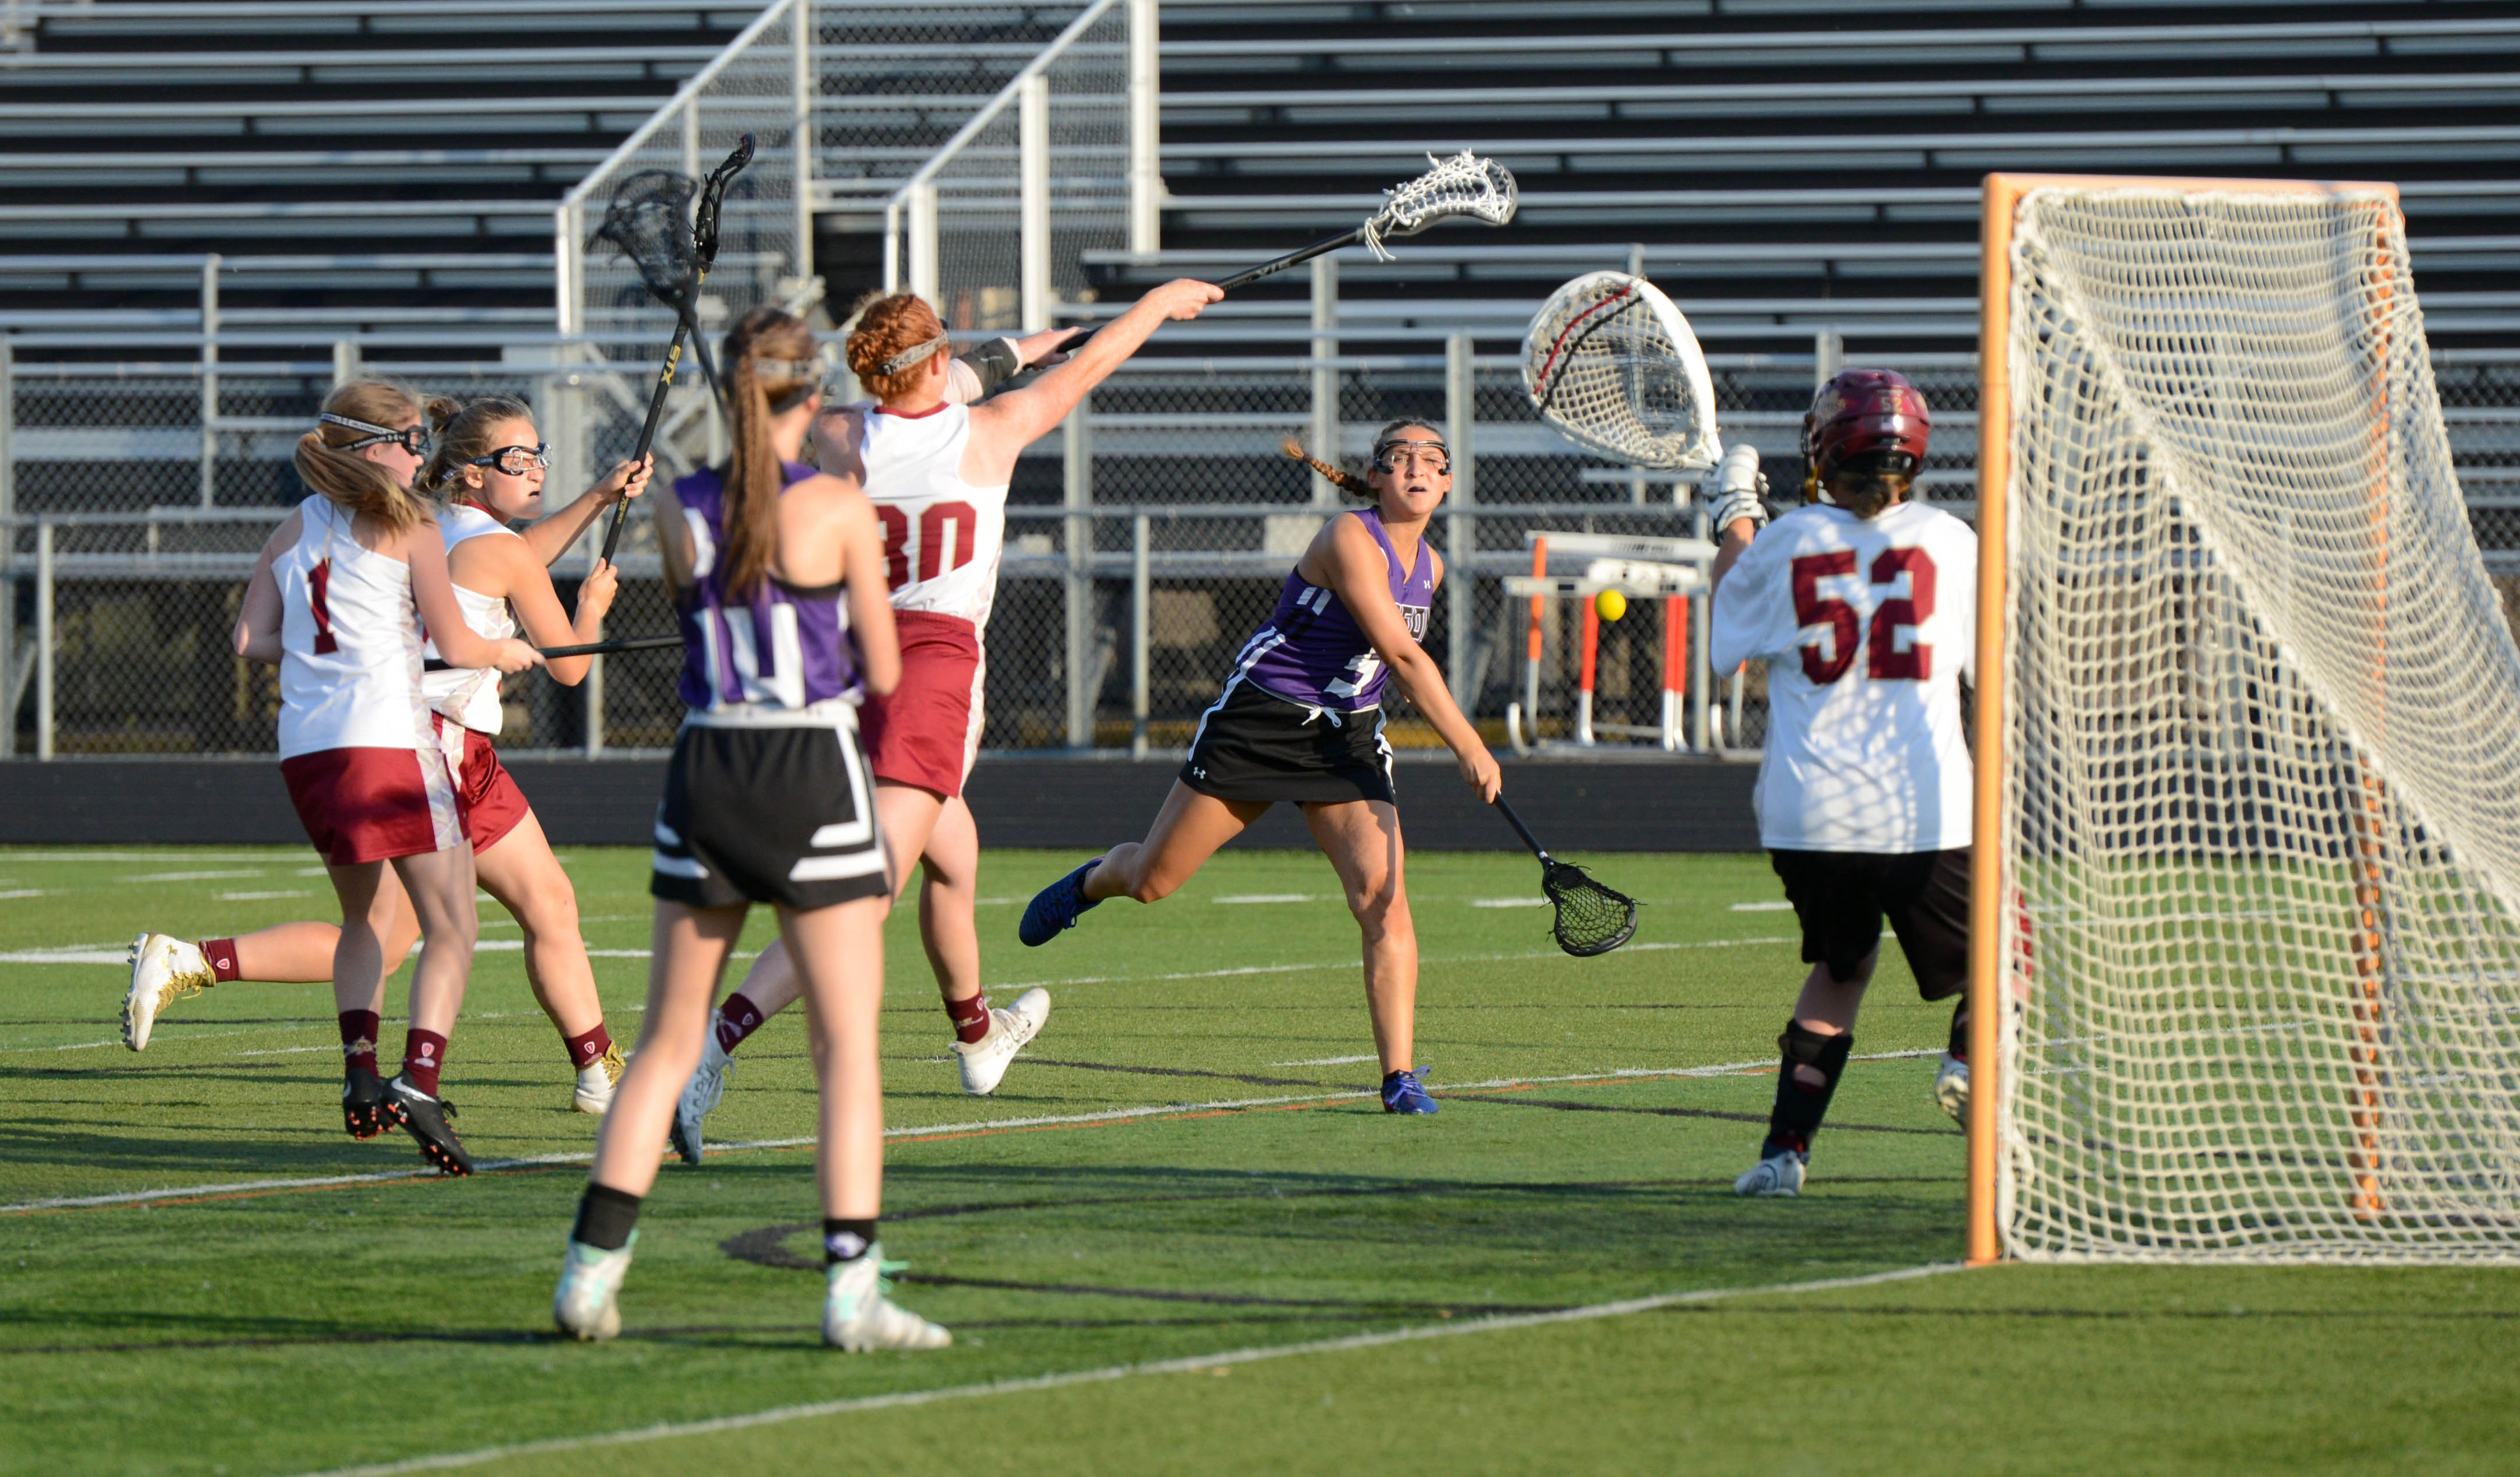 Buffalo midfielder Claire Stevens (5) shoots against Maple Grove in the Section 8 championship. Buffalo's late rally wasn't enough to stop Maple Grove. Photo by Carter Jones, SportsEngine